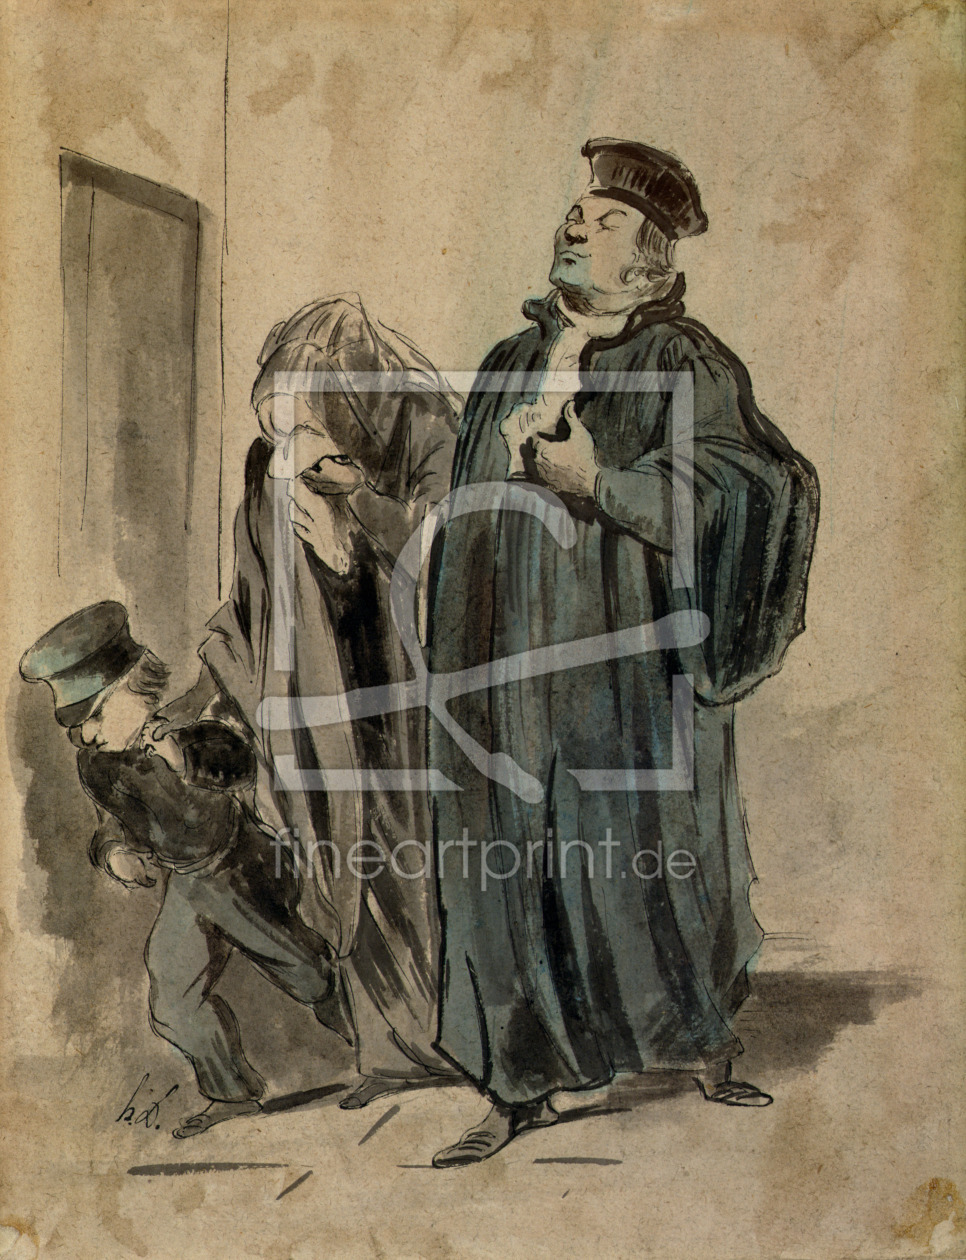 Bild-Nr.: 31001616 Judge, Woman and Child erstellt von Daumier, Honore